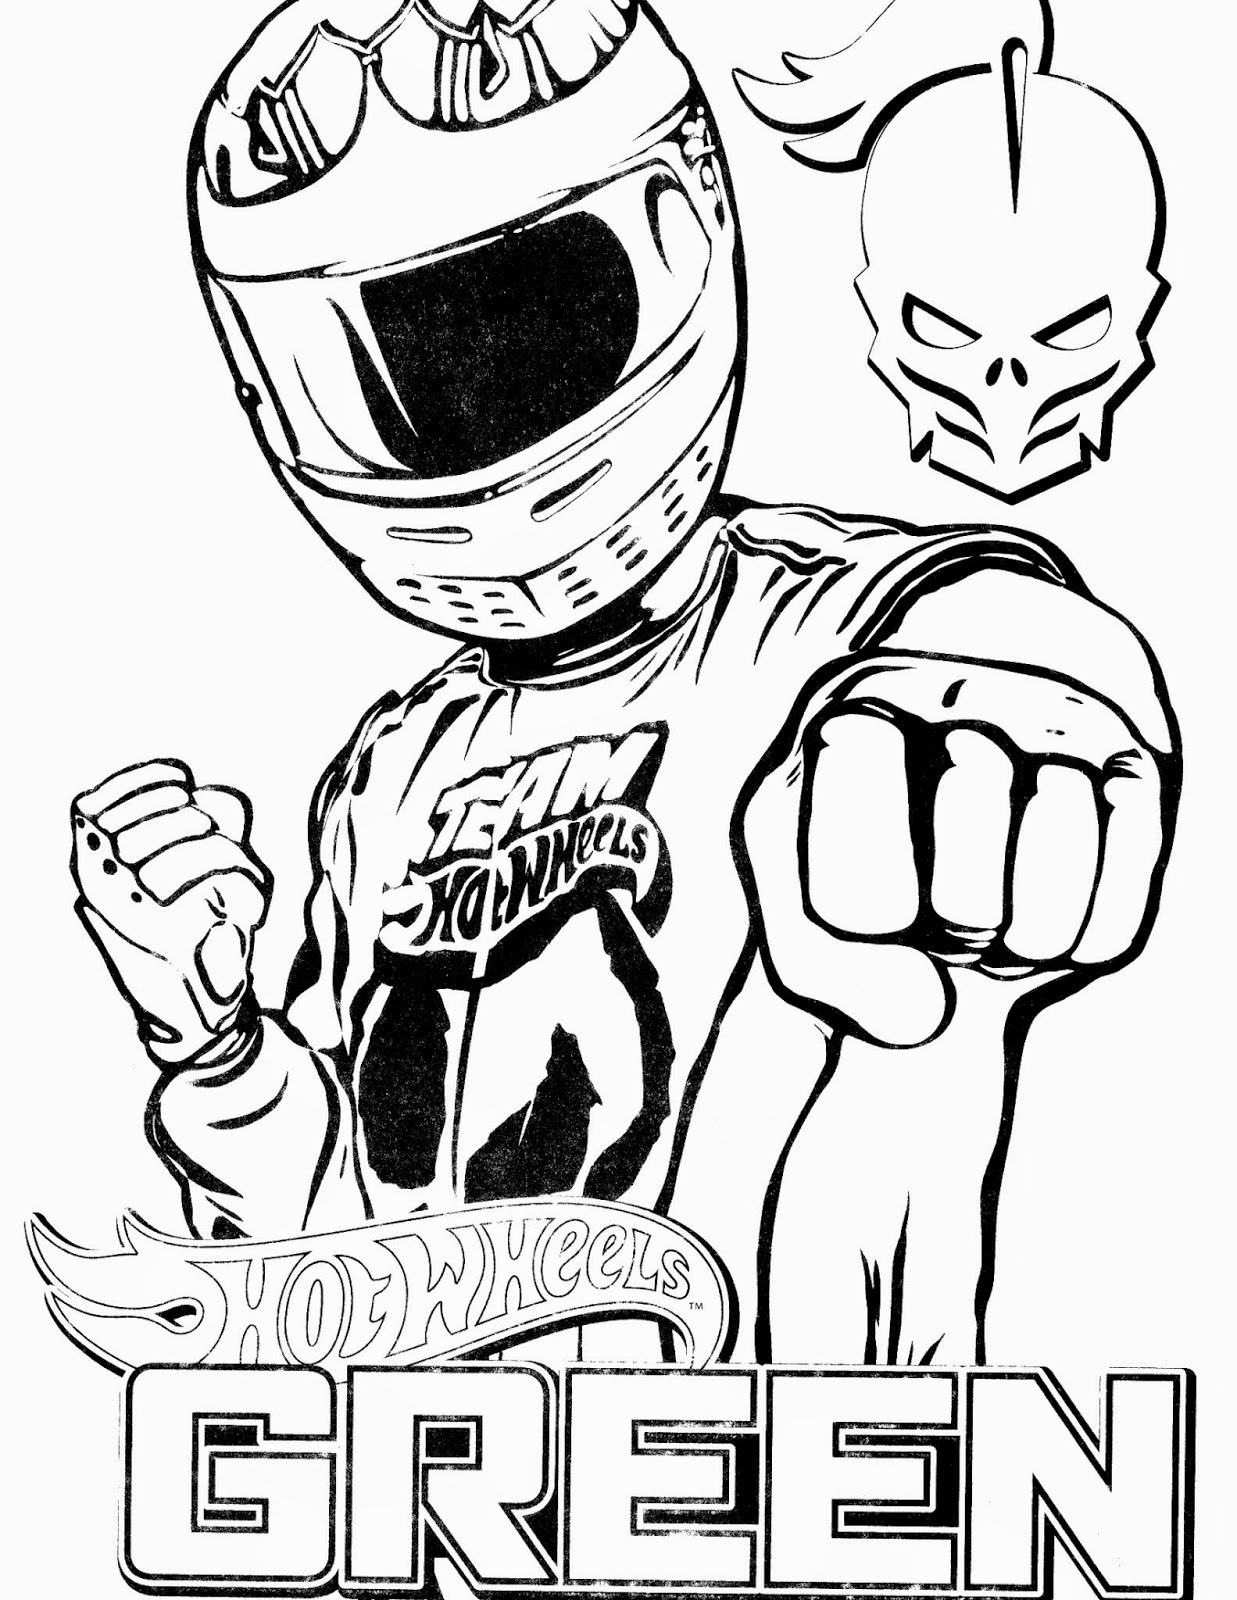 Hot Wheels Coloring Pages 60